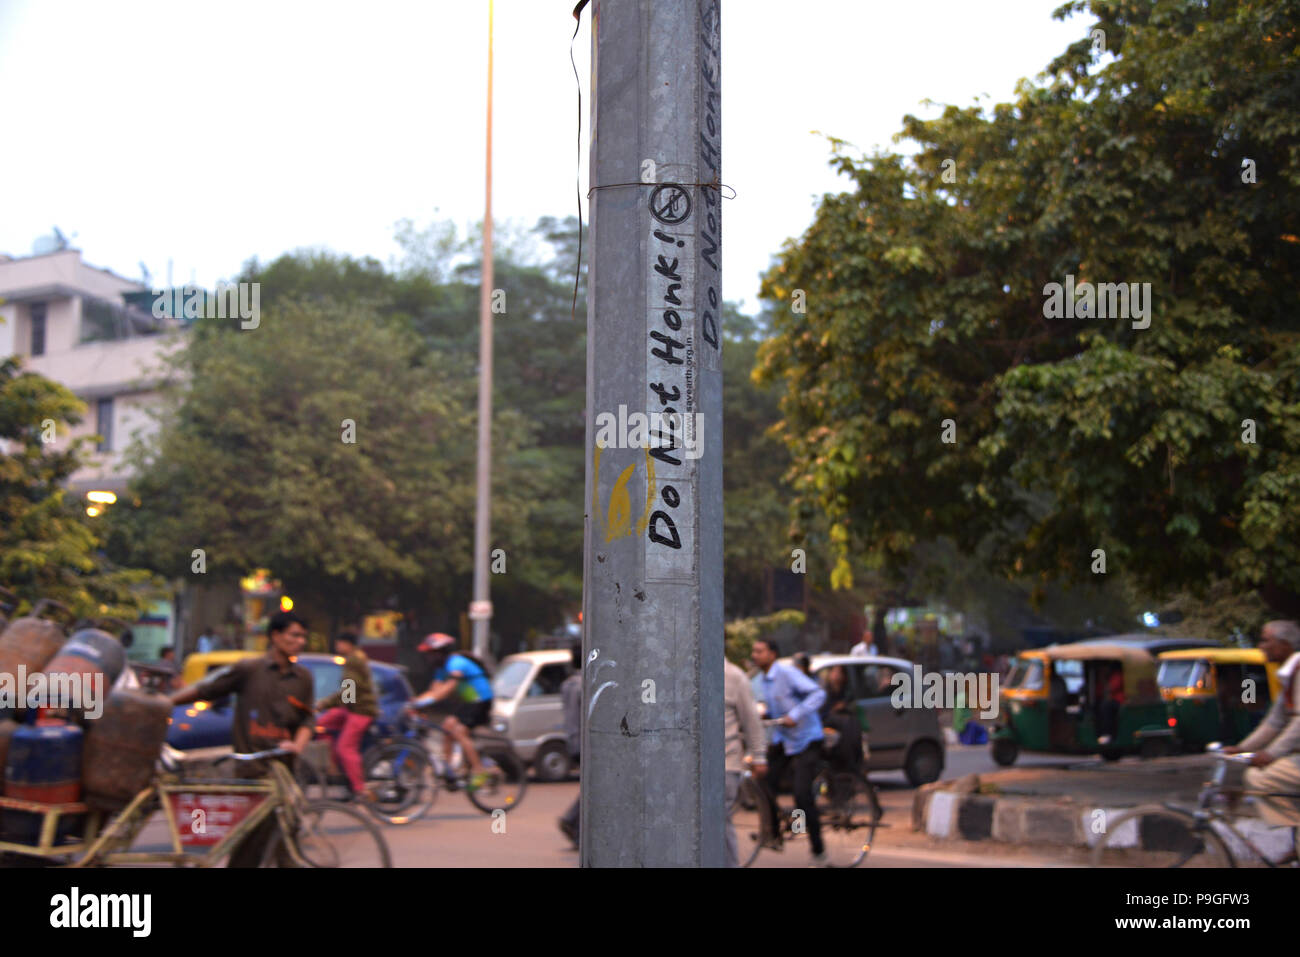 Amusing do not honk sign in Delhi India, photographed from a moving vehicle - Stock Image